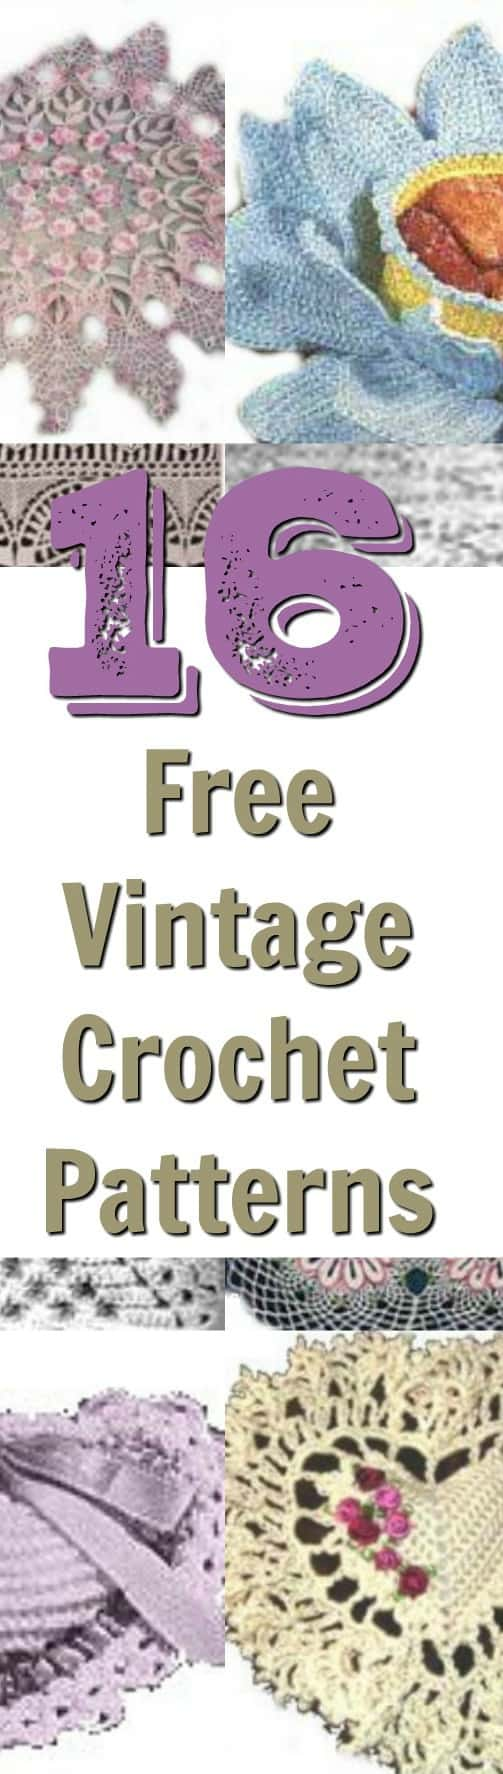 16 vintage crochet patterns - yours for free!